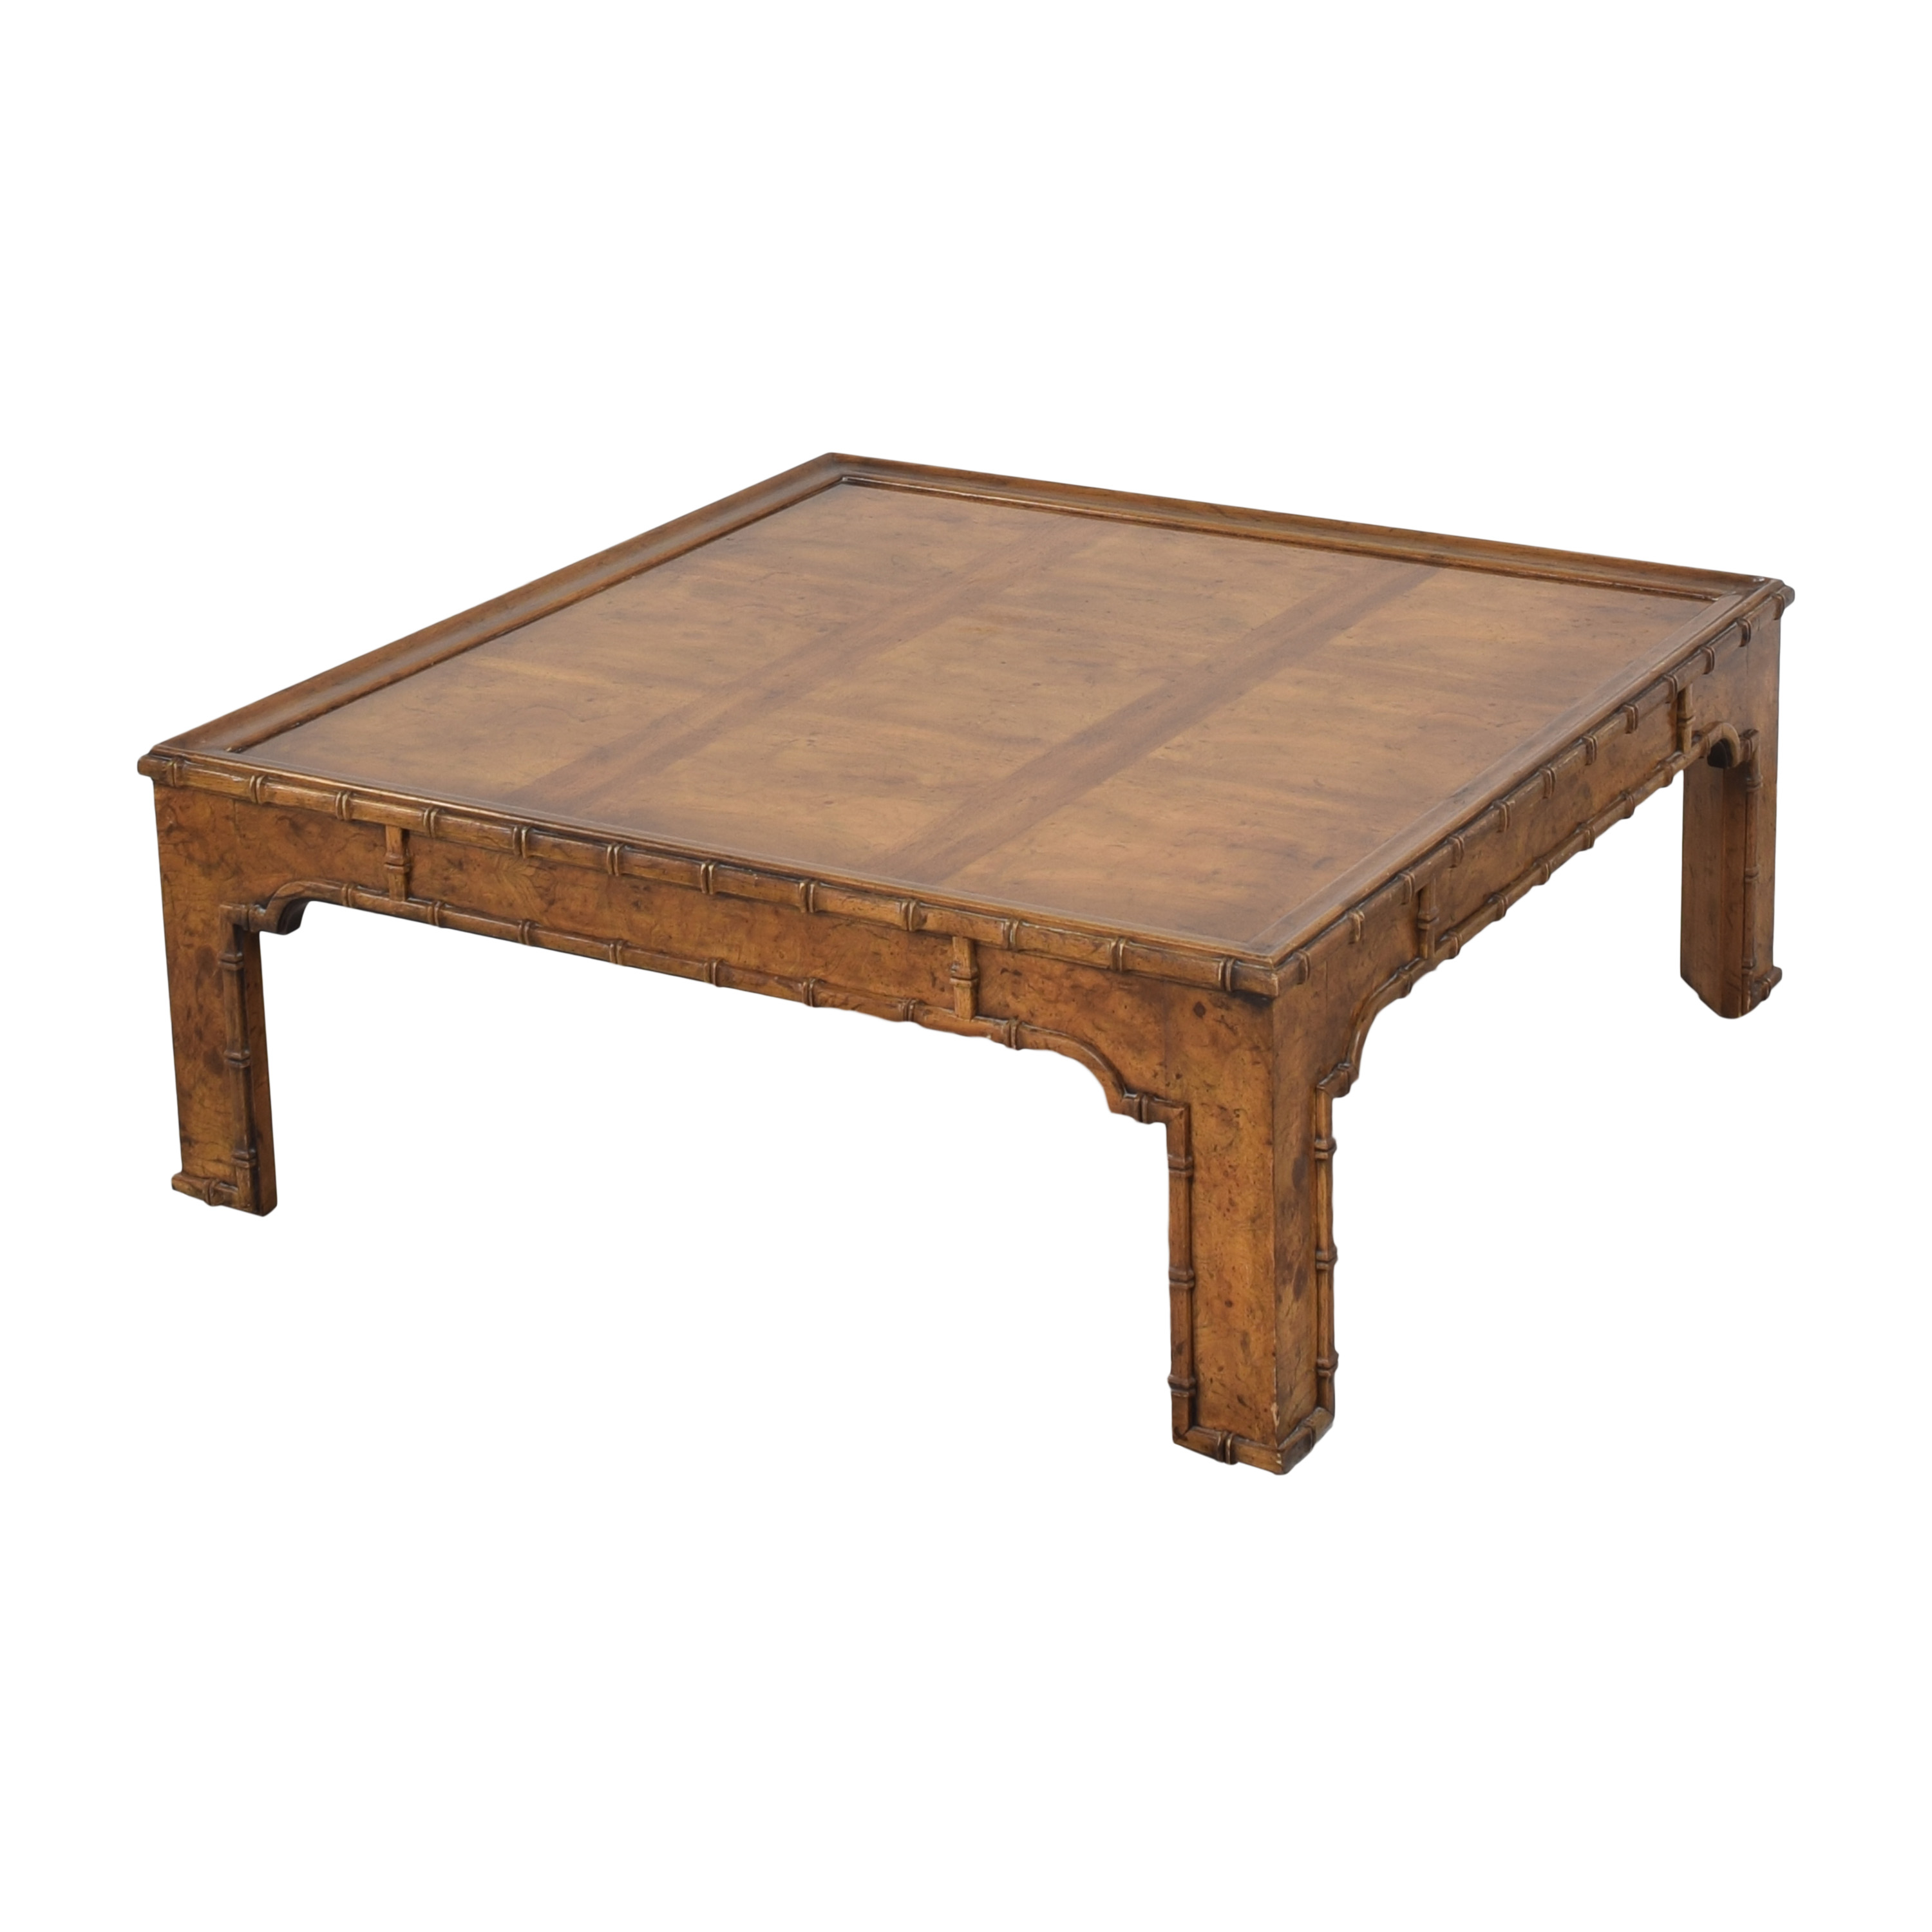 Heritage Heritage Square Coffee Table coupon